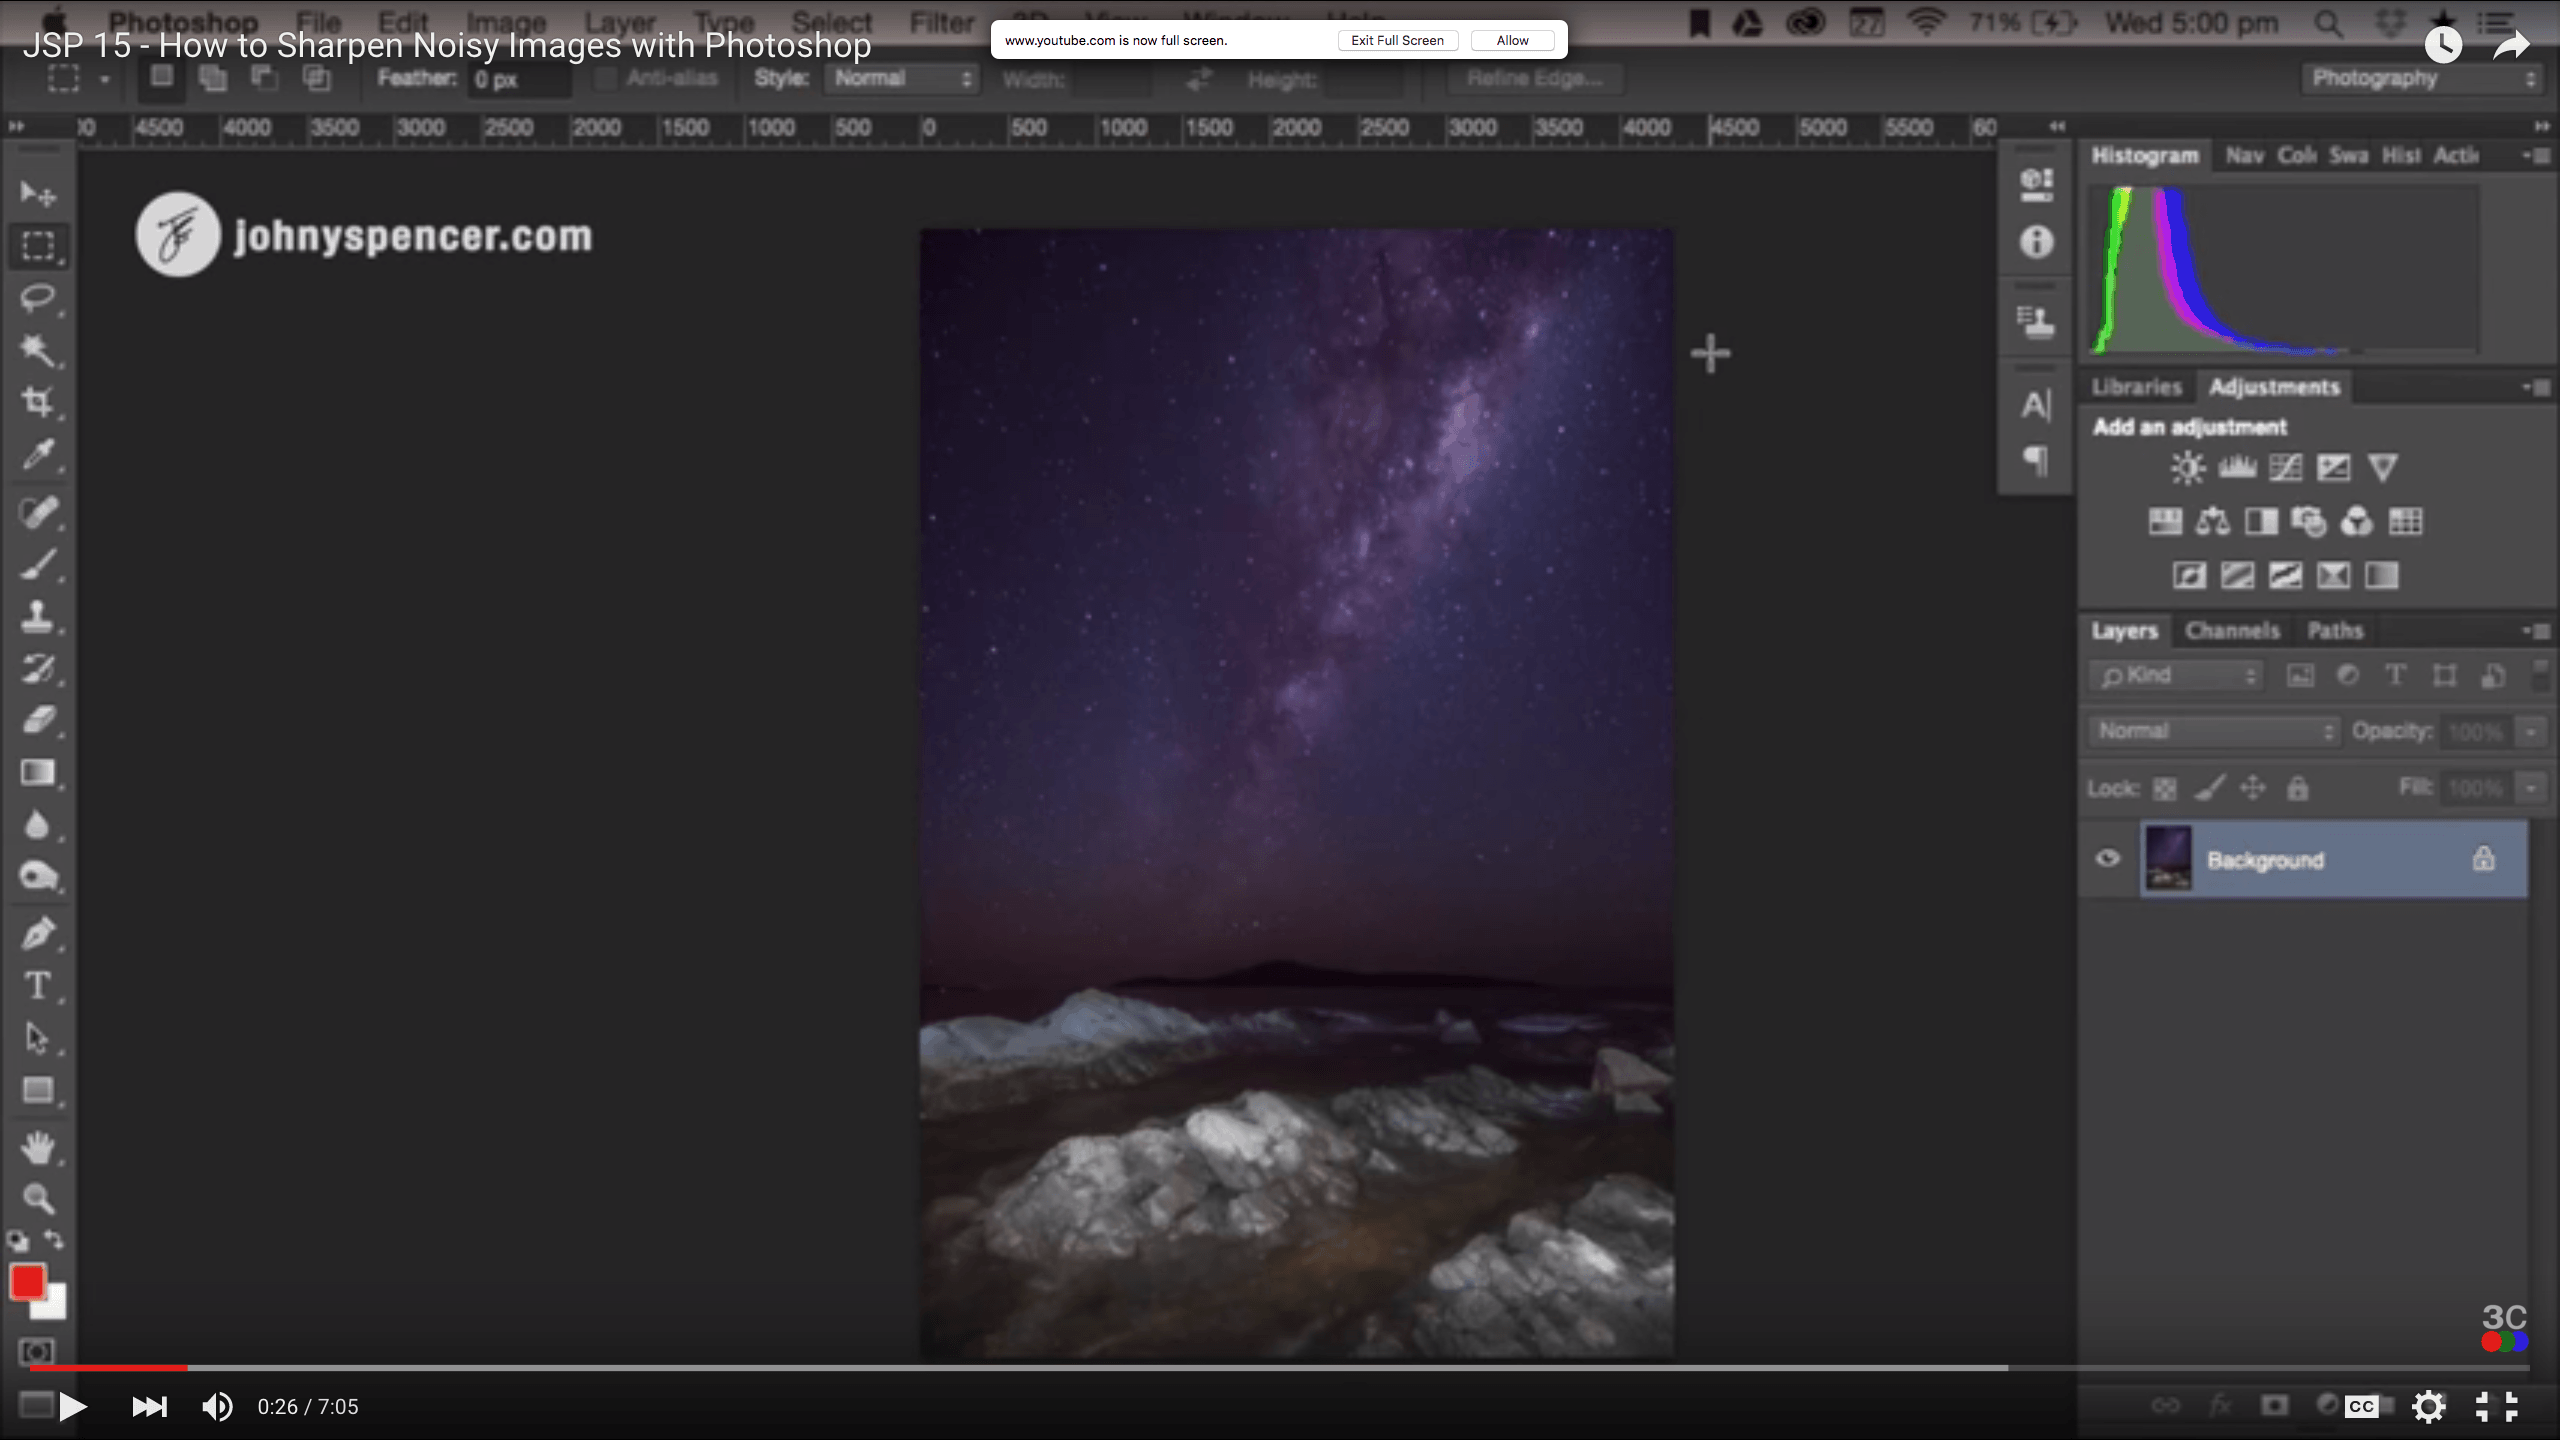 How to Sharpen Noisy Images with Photoshop